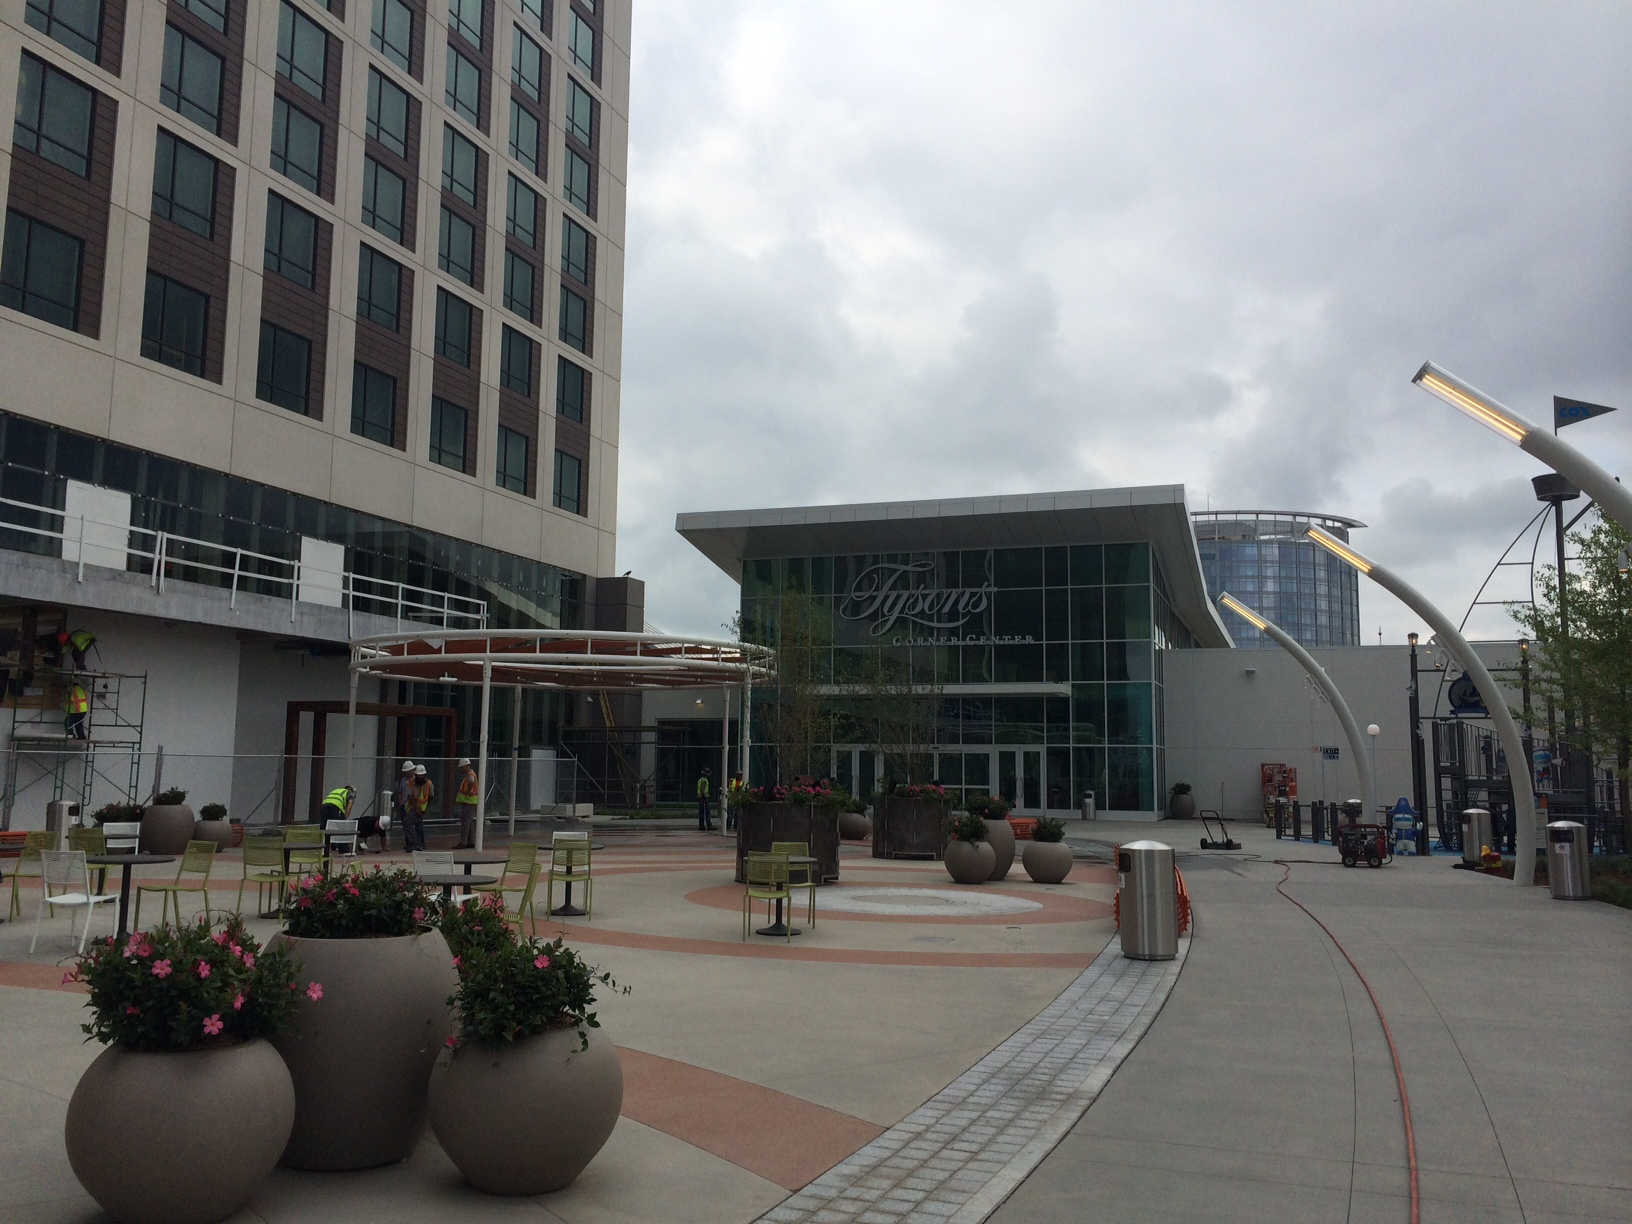 Big expectations for Tysons Corner ahead of Silver Line opening